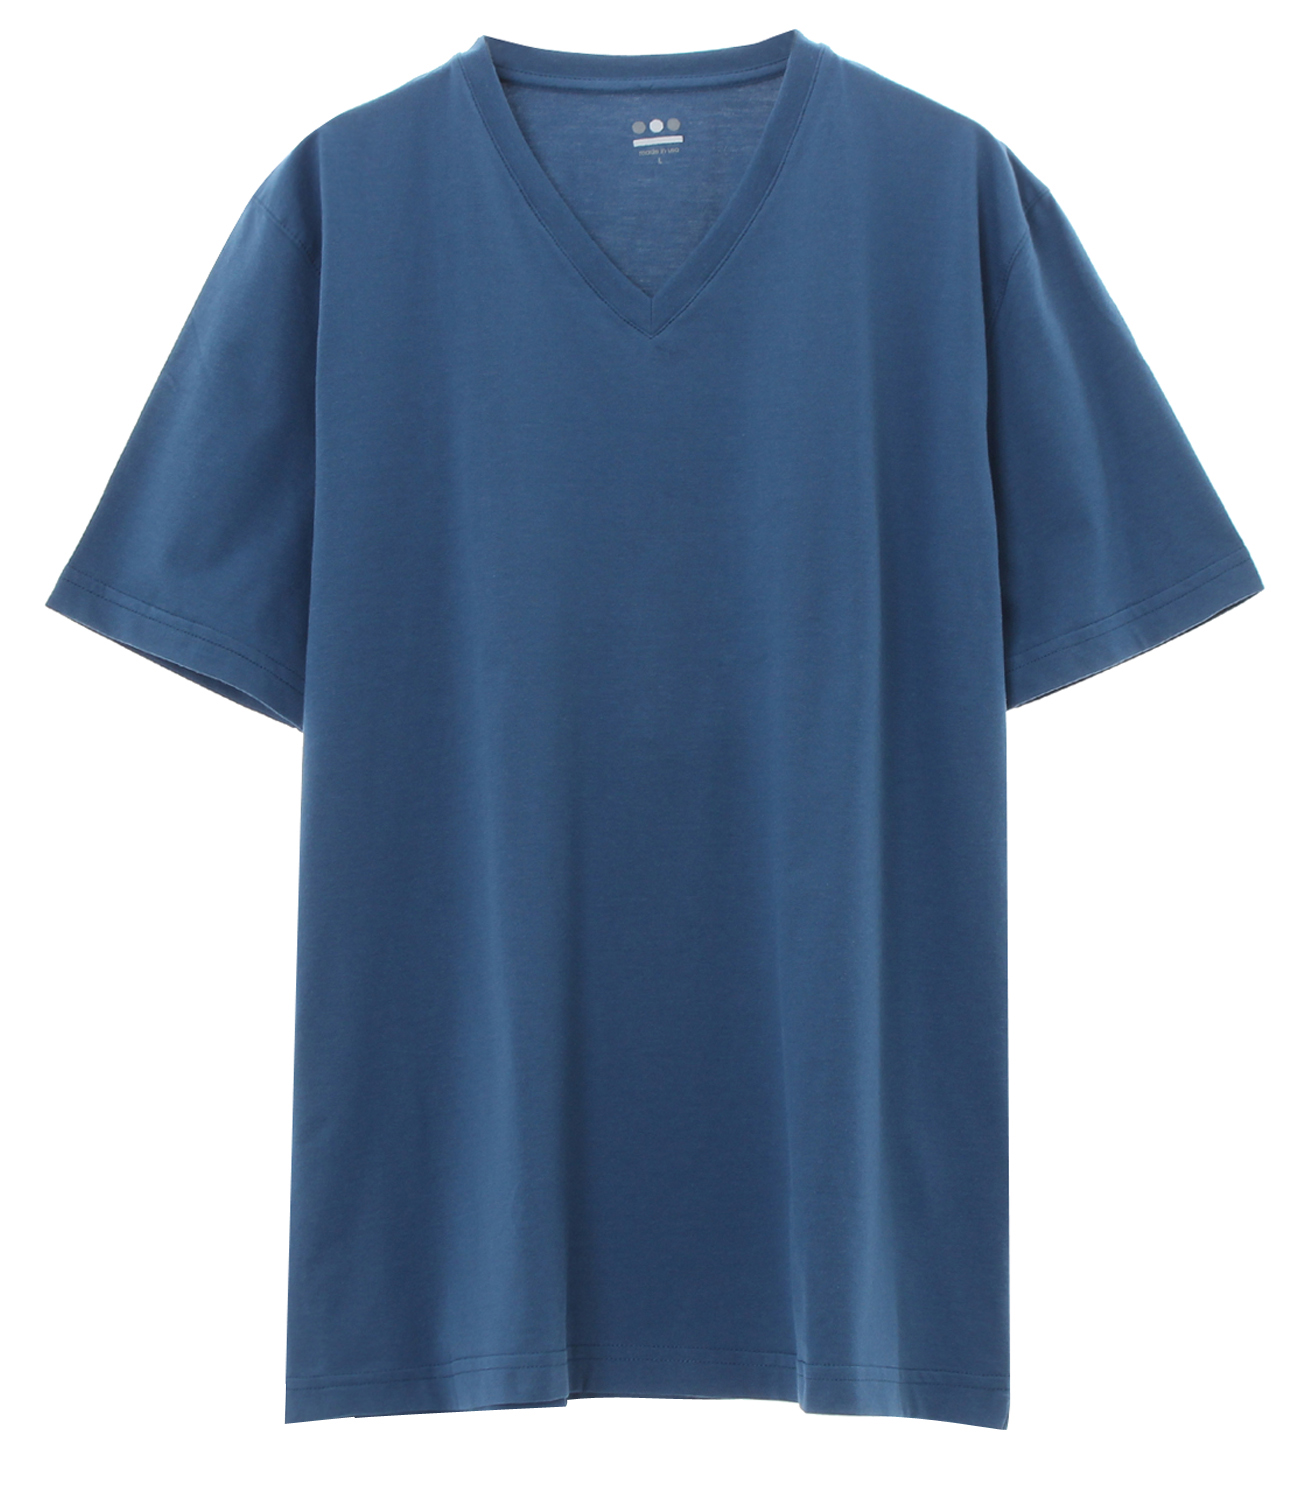 powdery cotton v-neck 詳細画像 blue jean 1